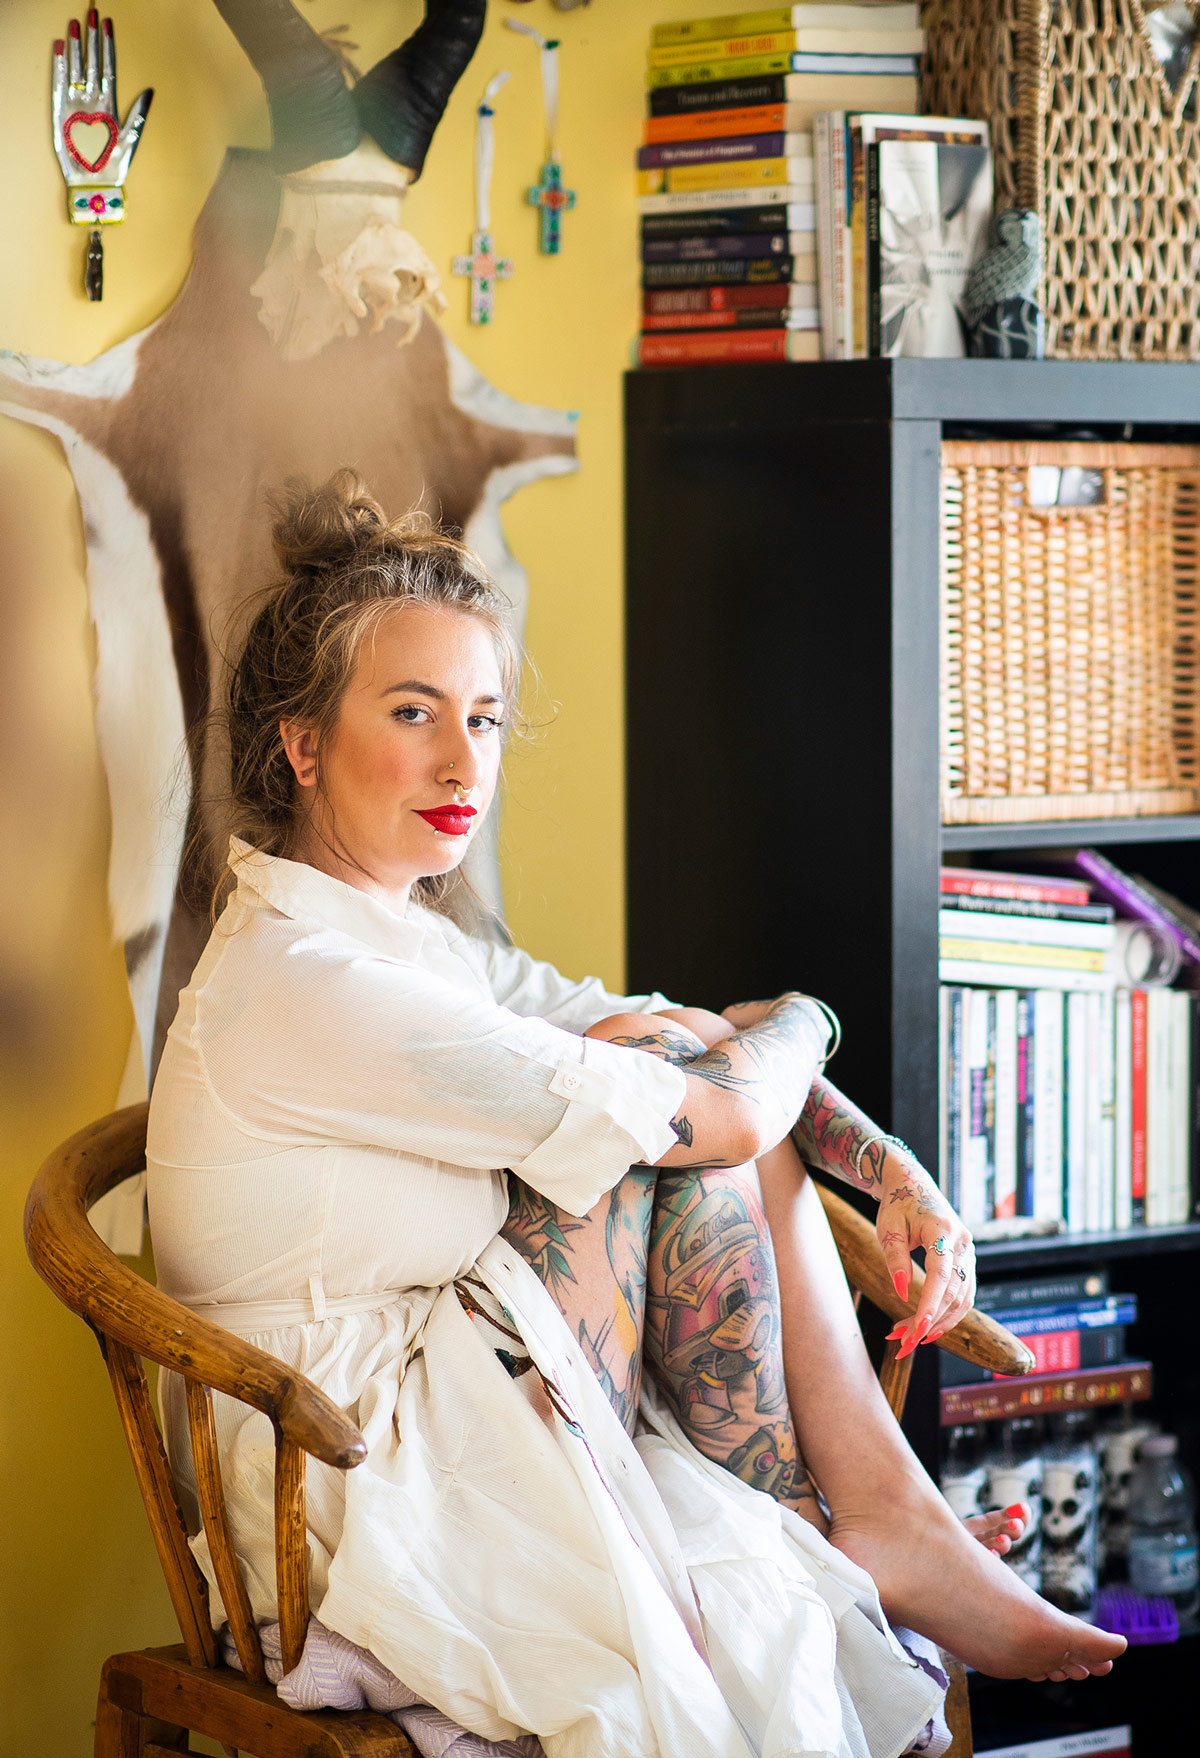 In a loose white gown, the author sits curled up in a chair against a yellow wall, arms folded casually around her knees. Her head is turned to the side and she faces the camera head-on, as if in challenge. There is a laden bookshelf in the background.